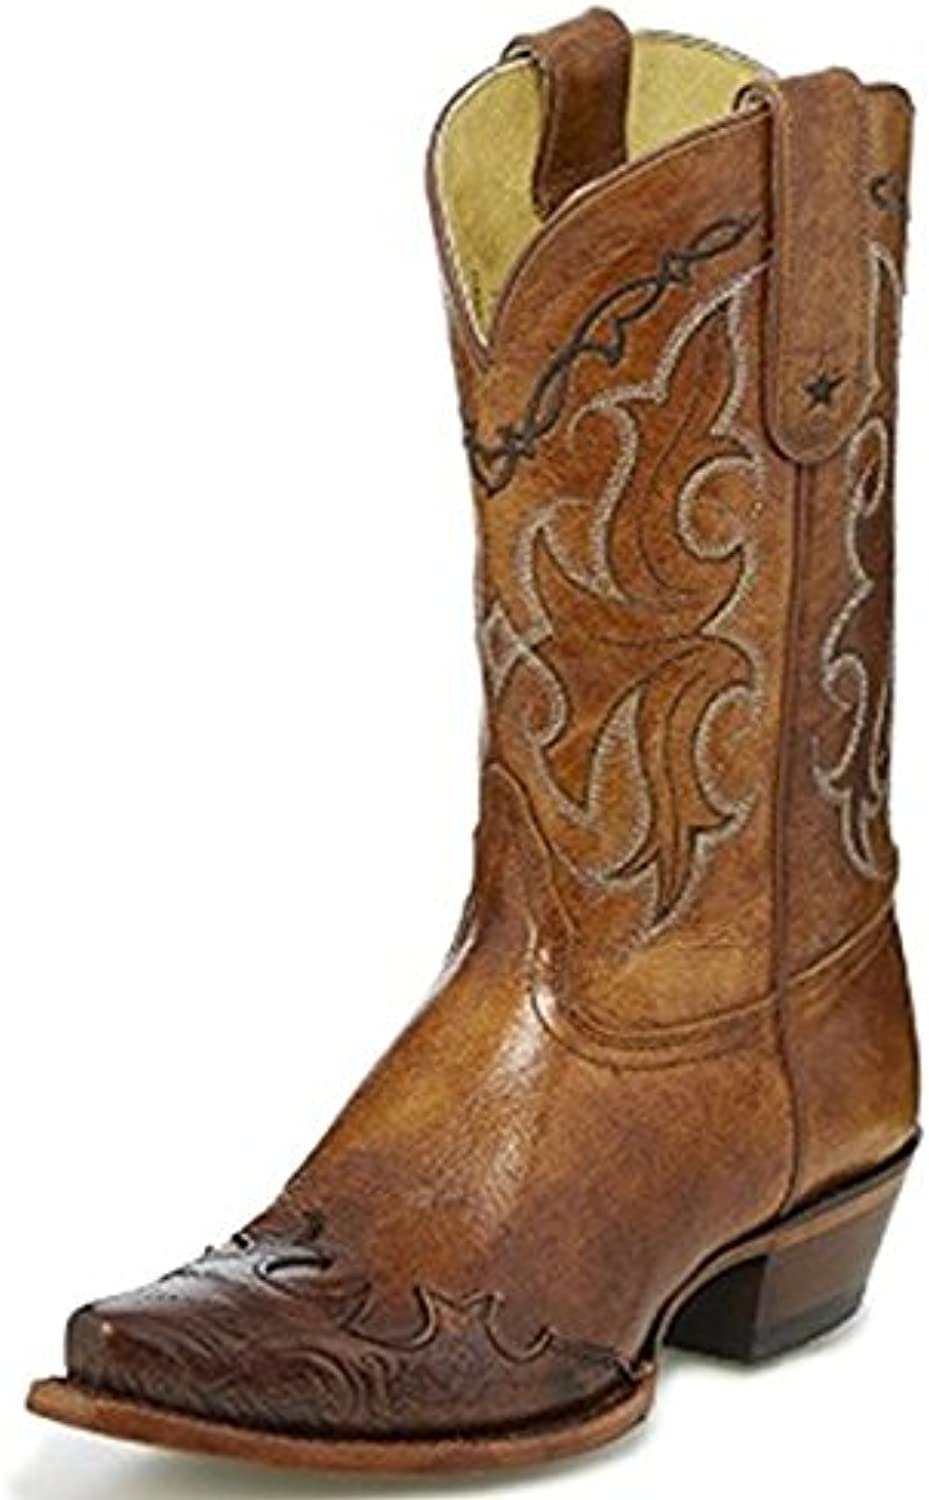 Tony Lama Women's Dasah Tan 11  Height (VF6003)   Foot Tan Santa Fe Brown Cowboy Leather Boot